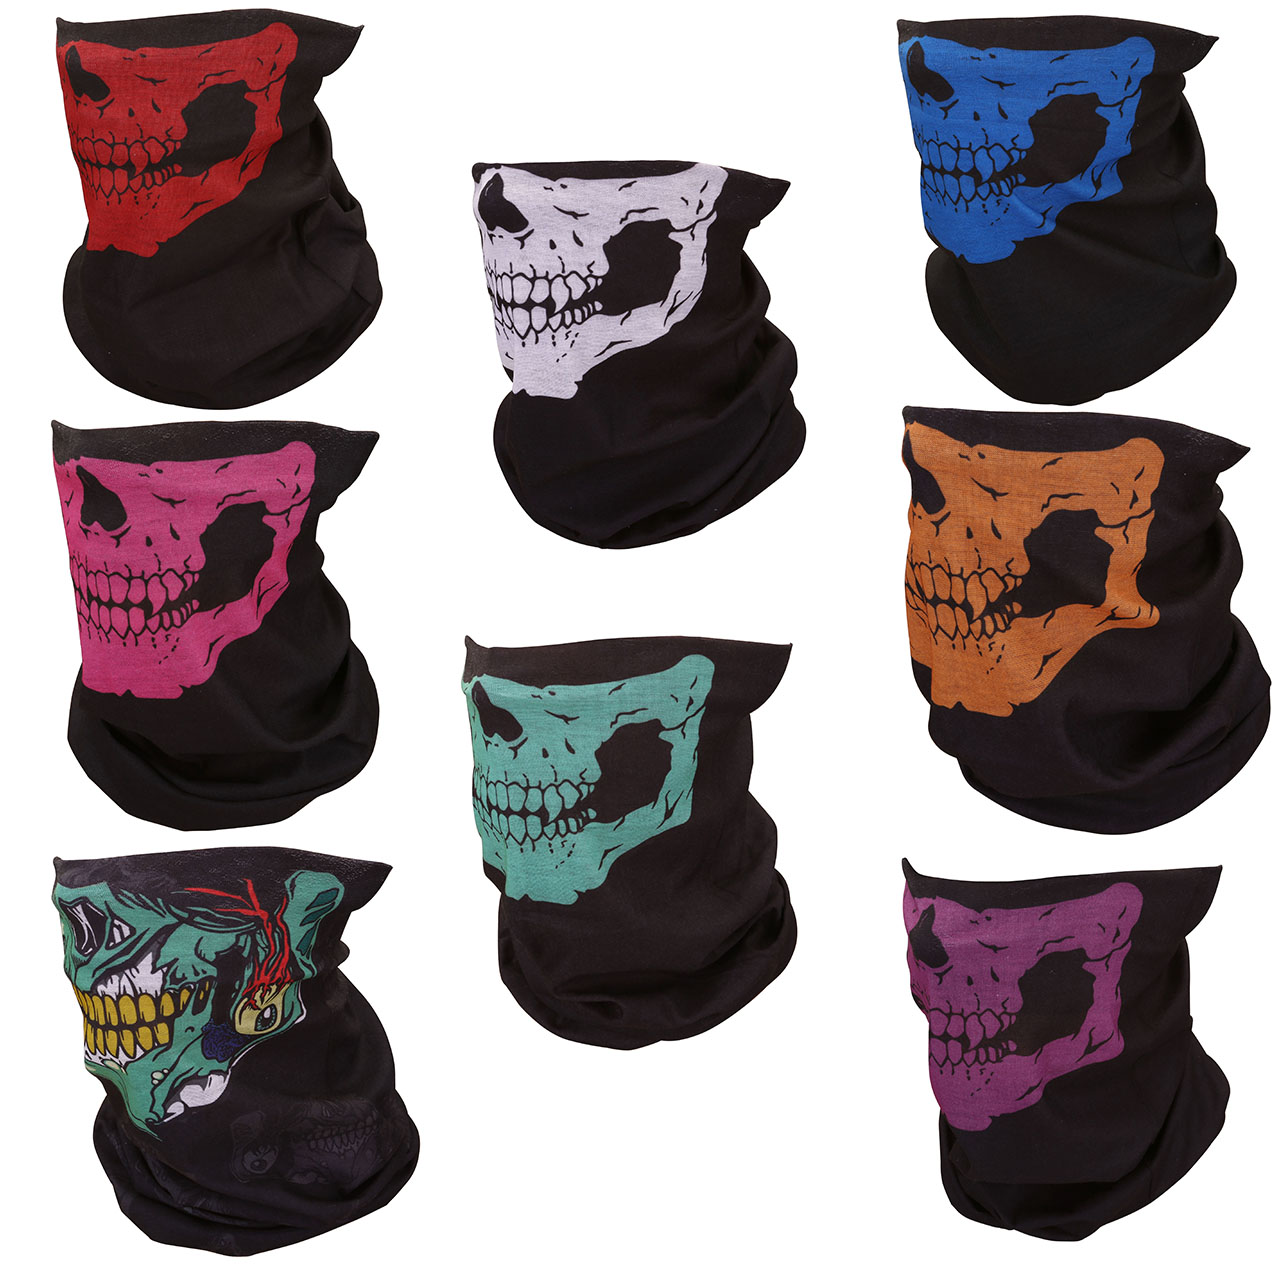 ACBungji Multifunction Magic Motorcycle Outdoor Sport Seamless Skull Tube Half Face Mask Wrap Headband Scarf Pack of 8